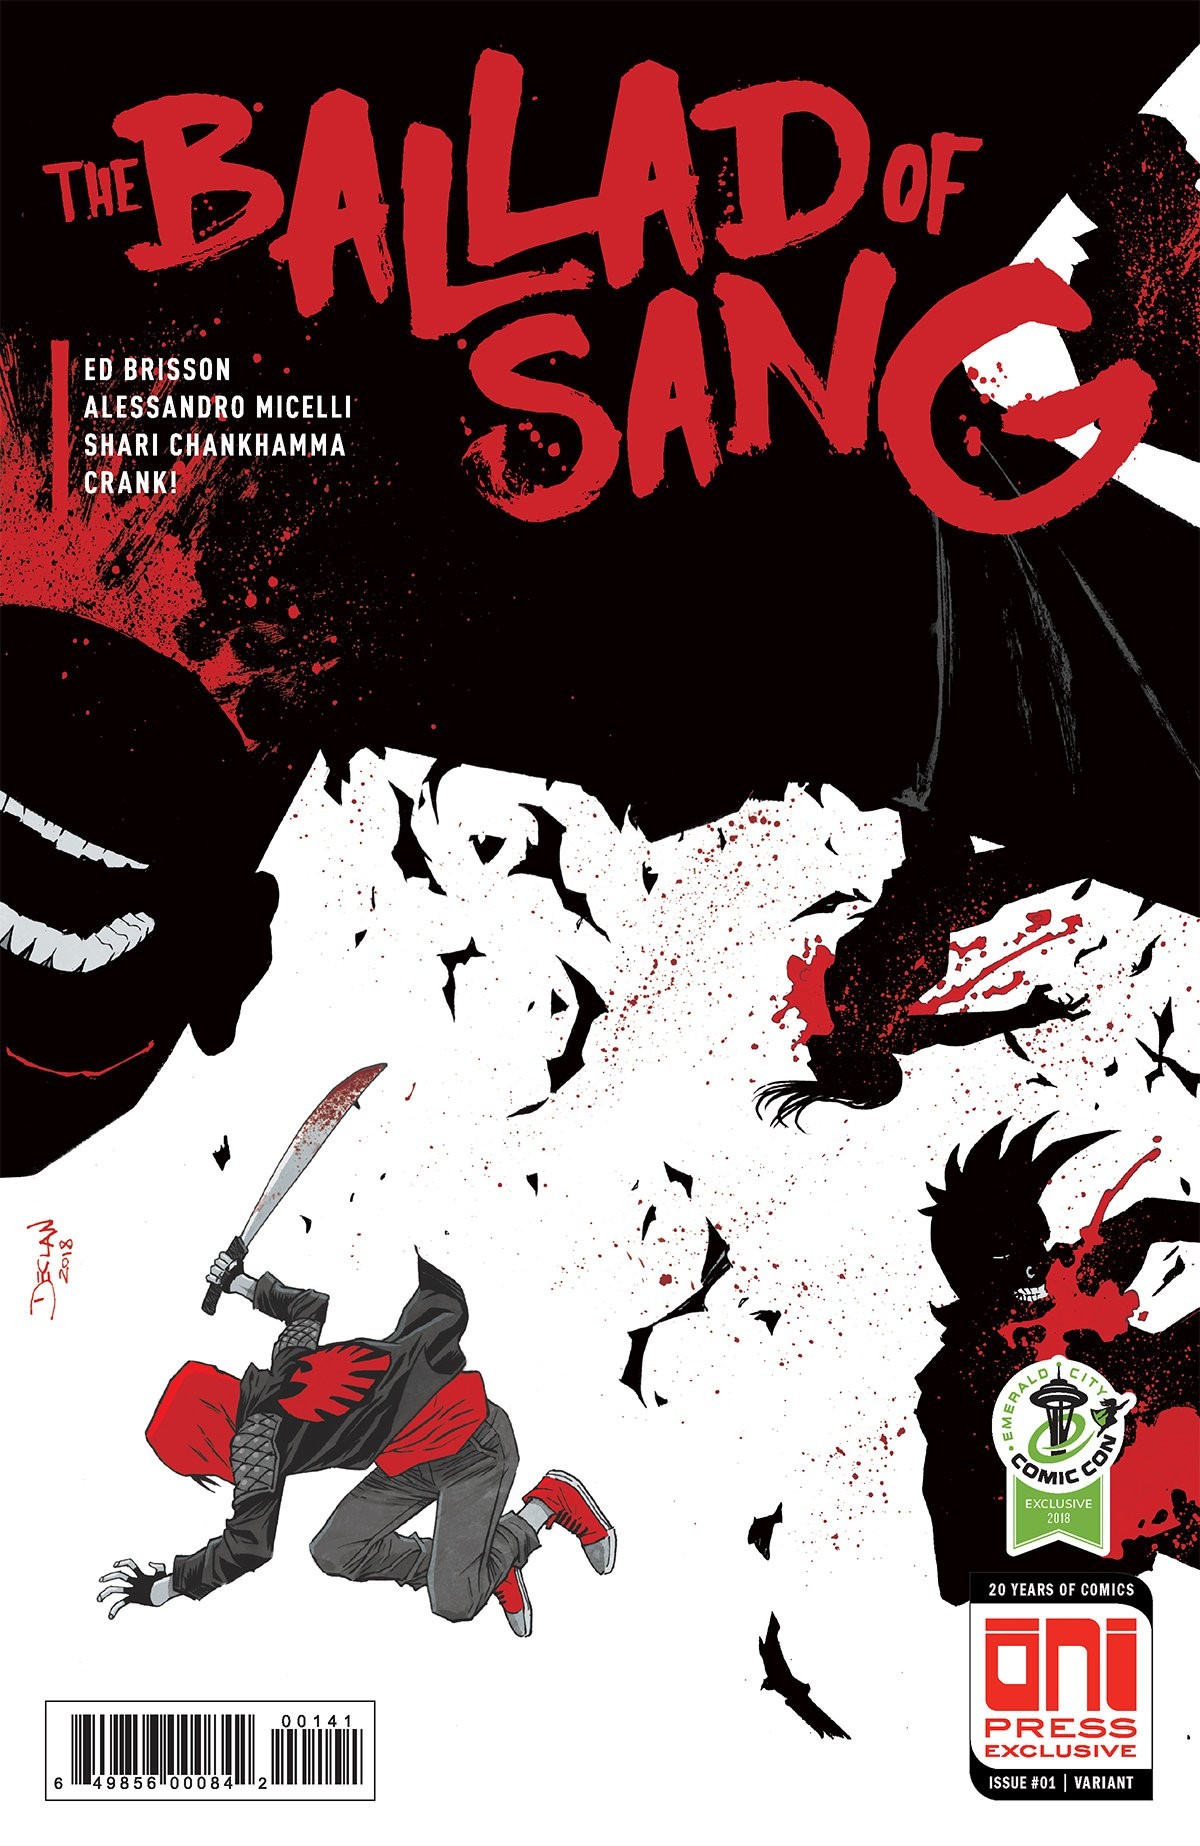 The Ballad of Sang #1 Variant Cover by Declan Shalvey